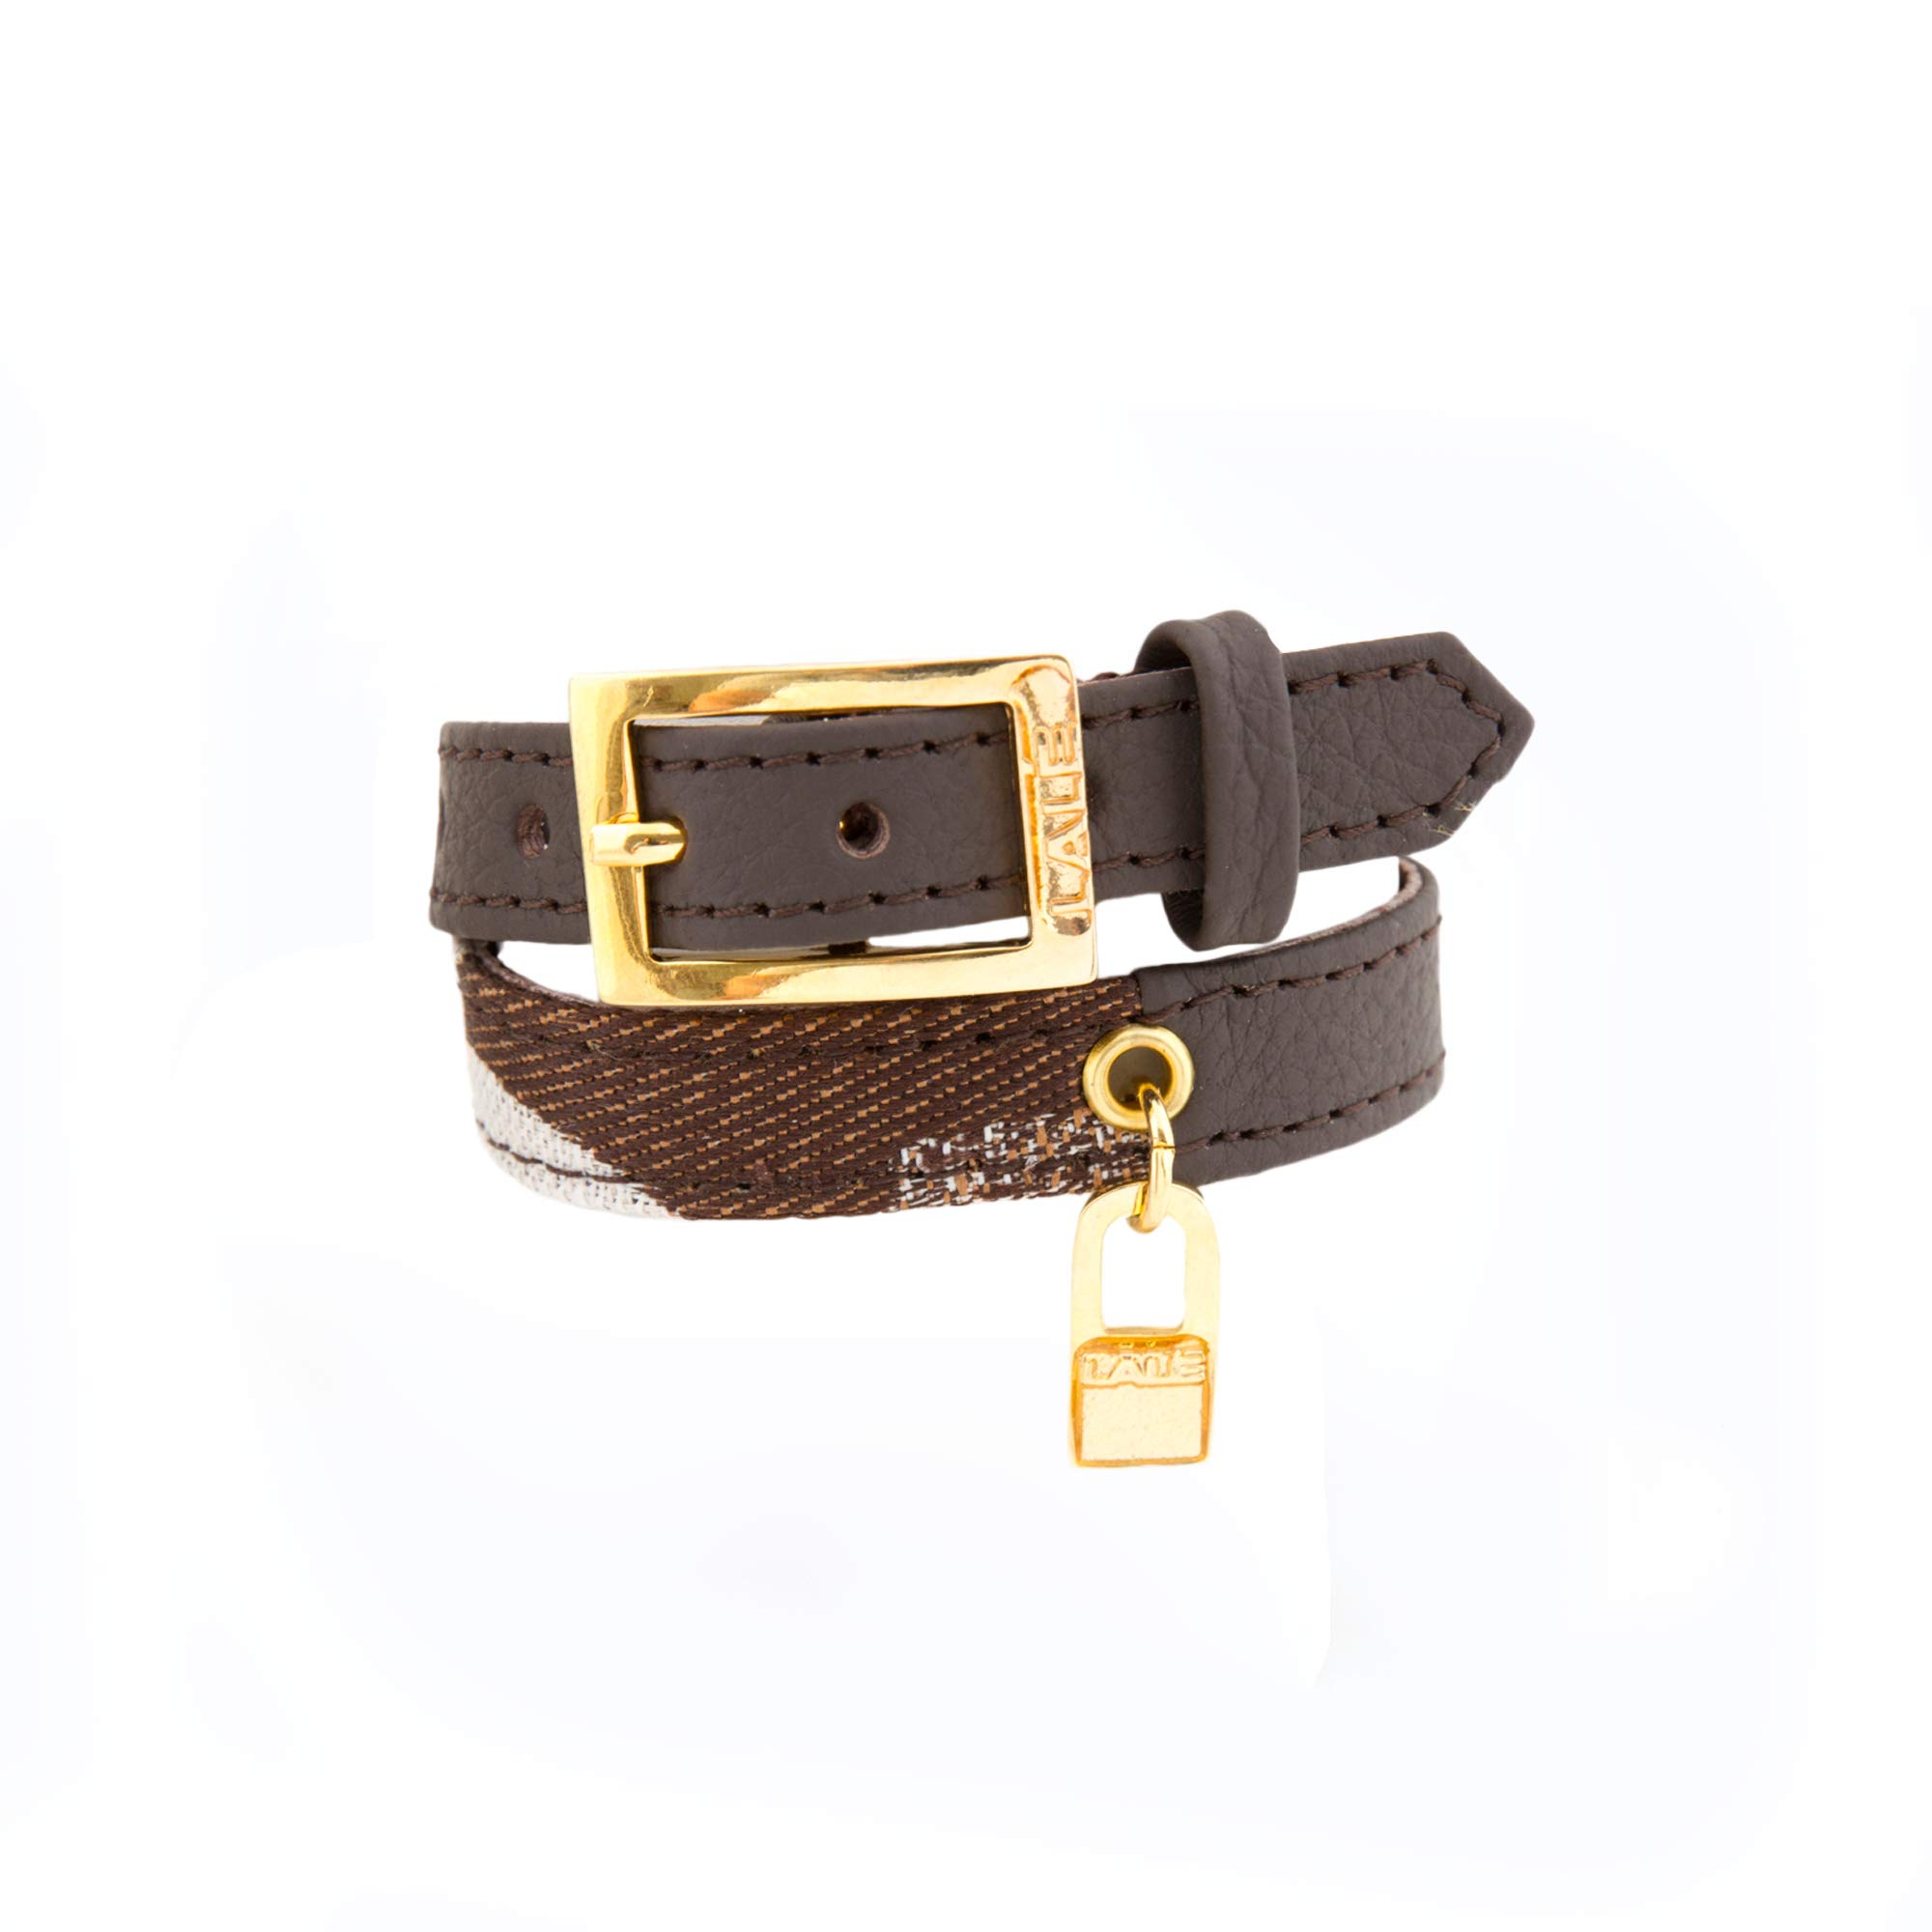 LALÉ Woman wrap Genuine Leather Bracelet | Twists Twice Around The Wrist | Ironwork Plated in Gold Buckle for Closure | Adjustable Size | Handmade Jewelry (Brown, 6.5)